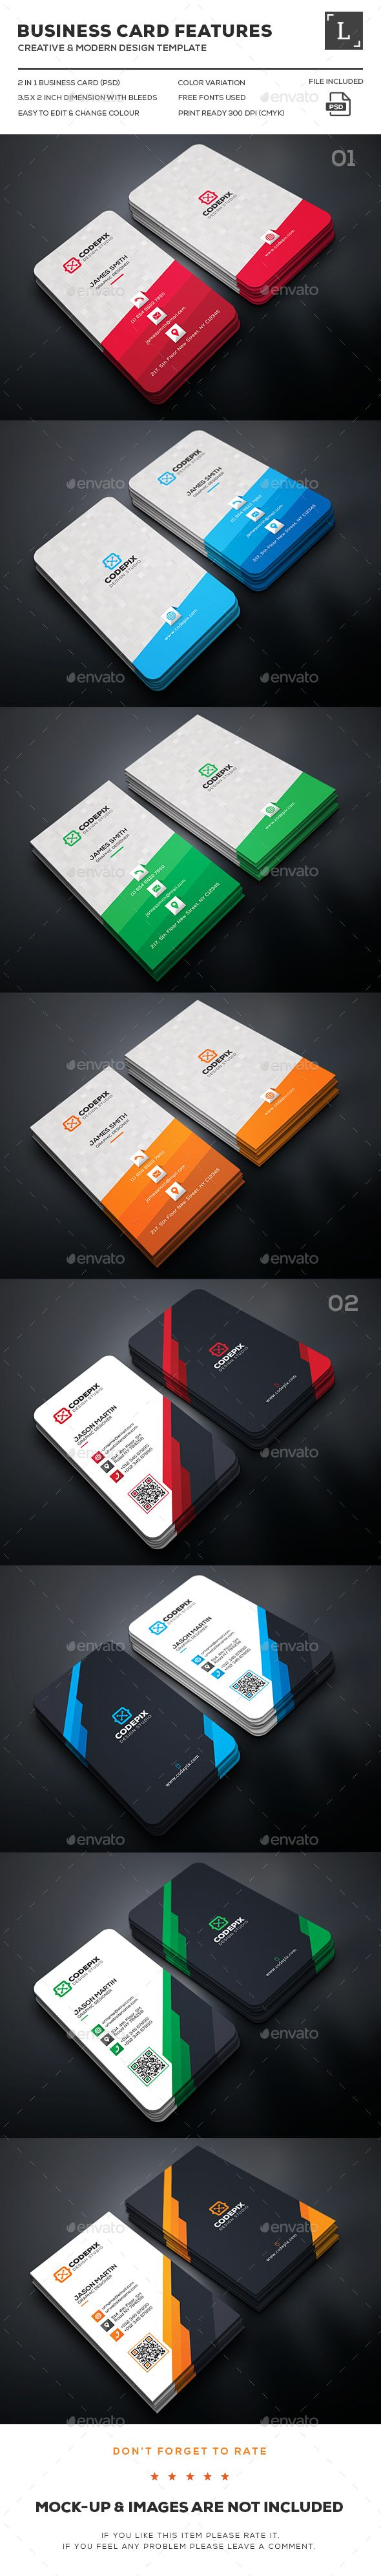 10 best Real Estate Business Card Templates images on Pinterest